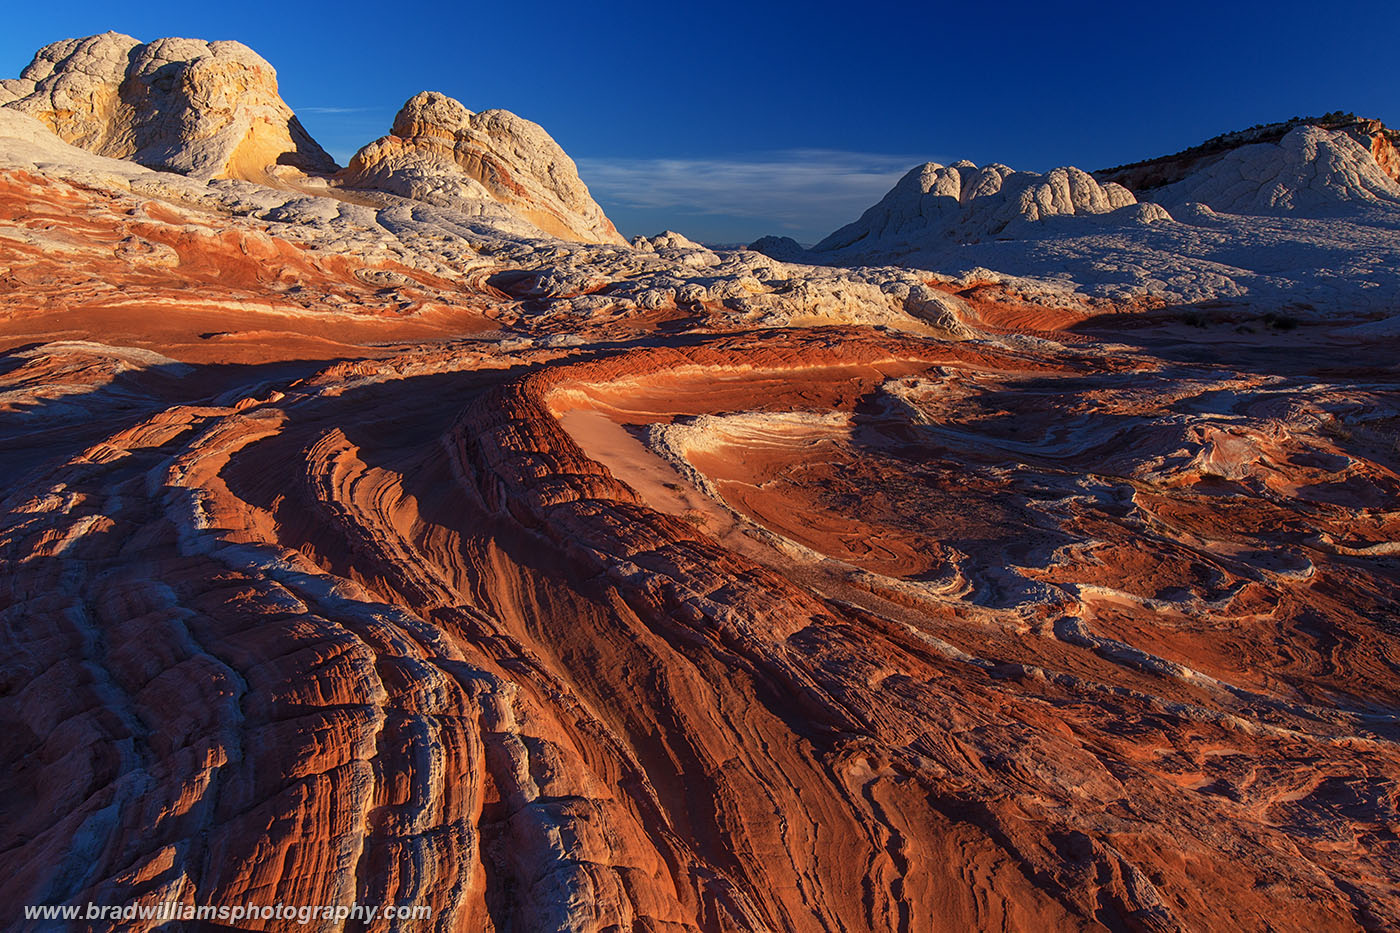 White Pocket, Vermilion Cliffs, Arizona